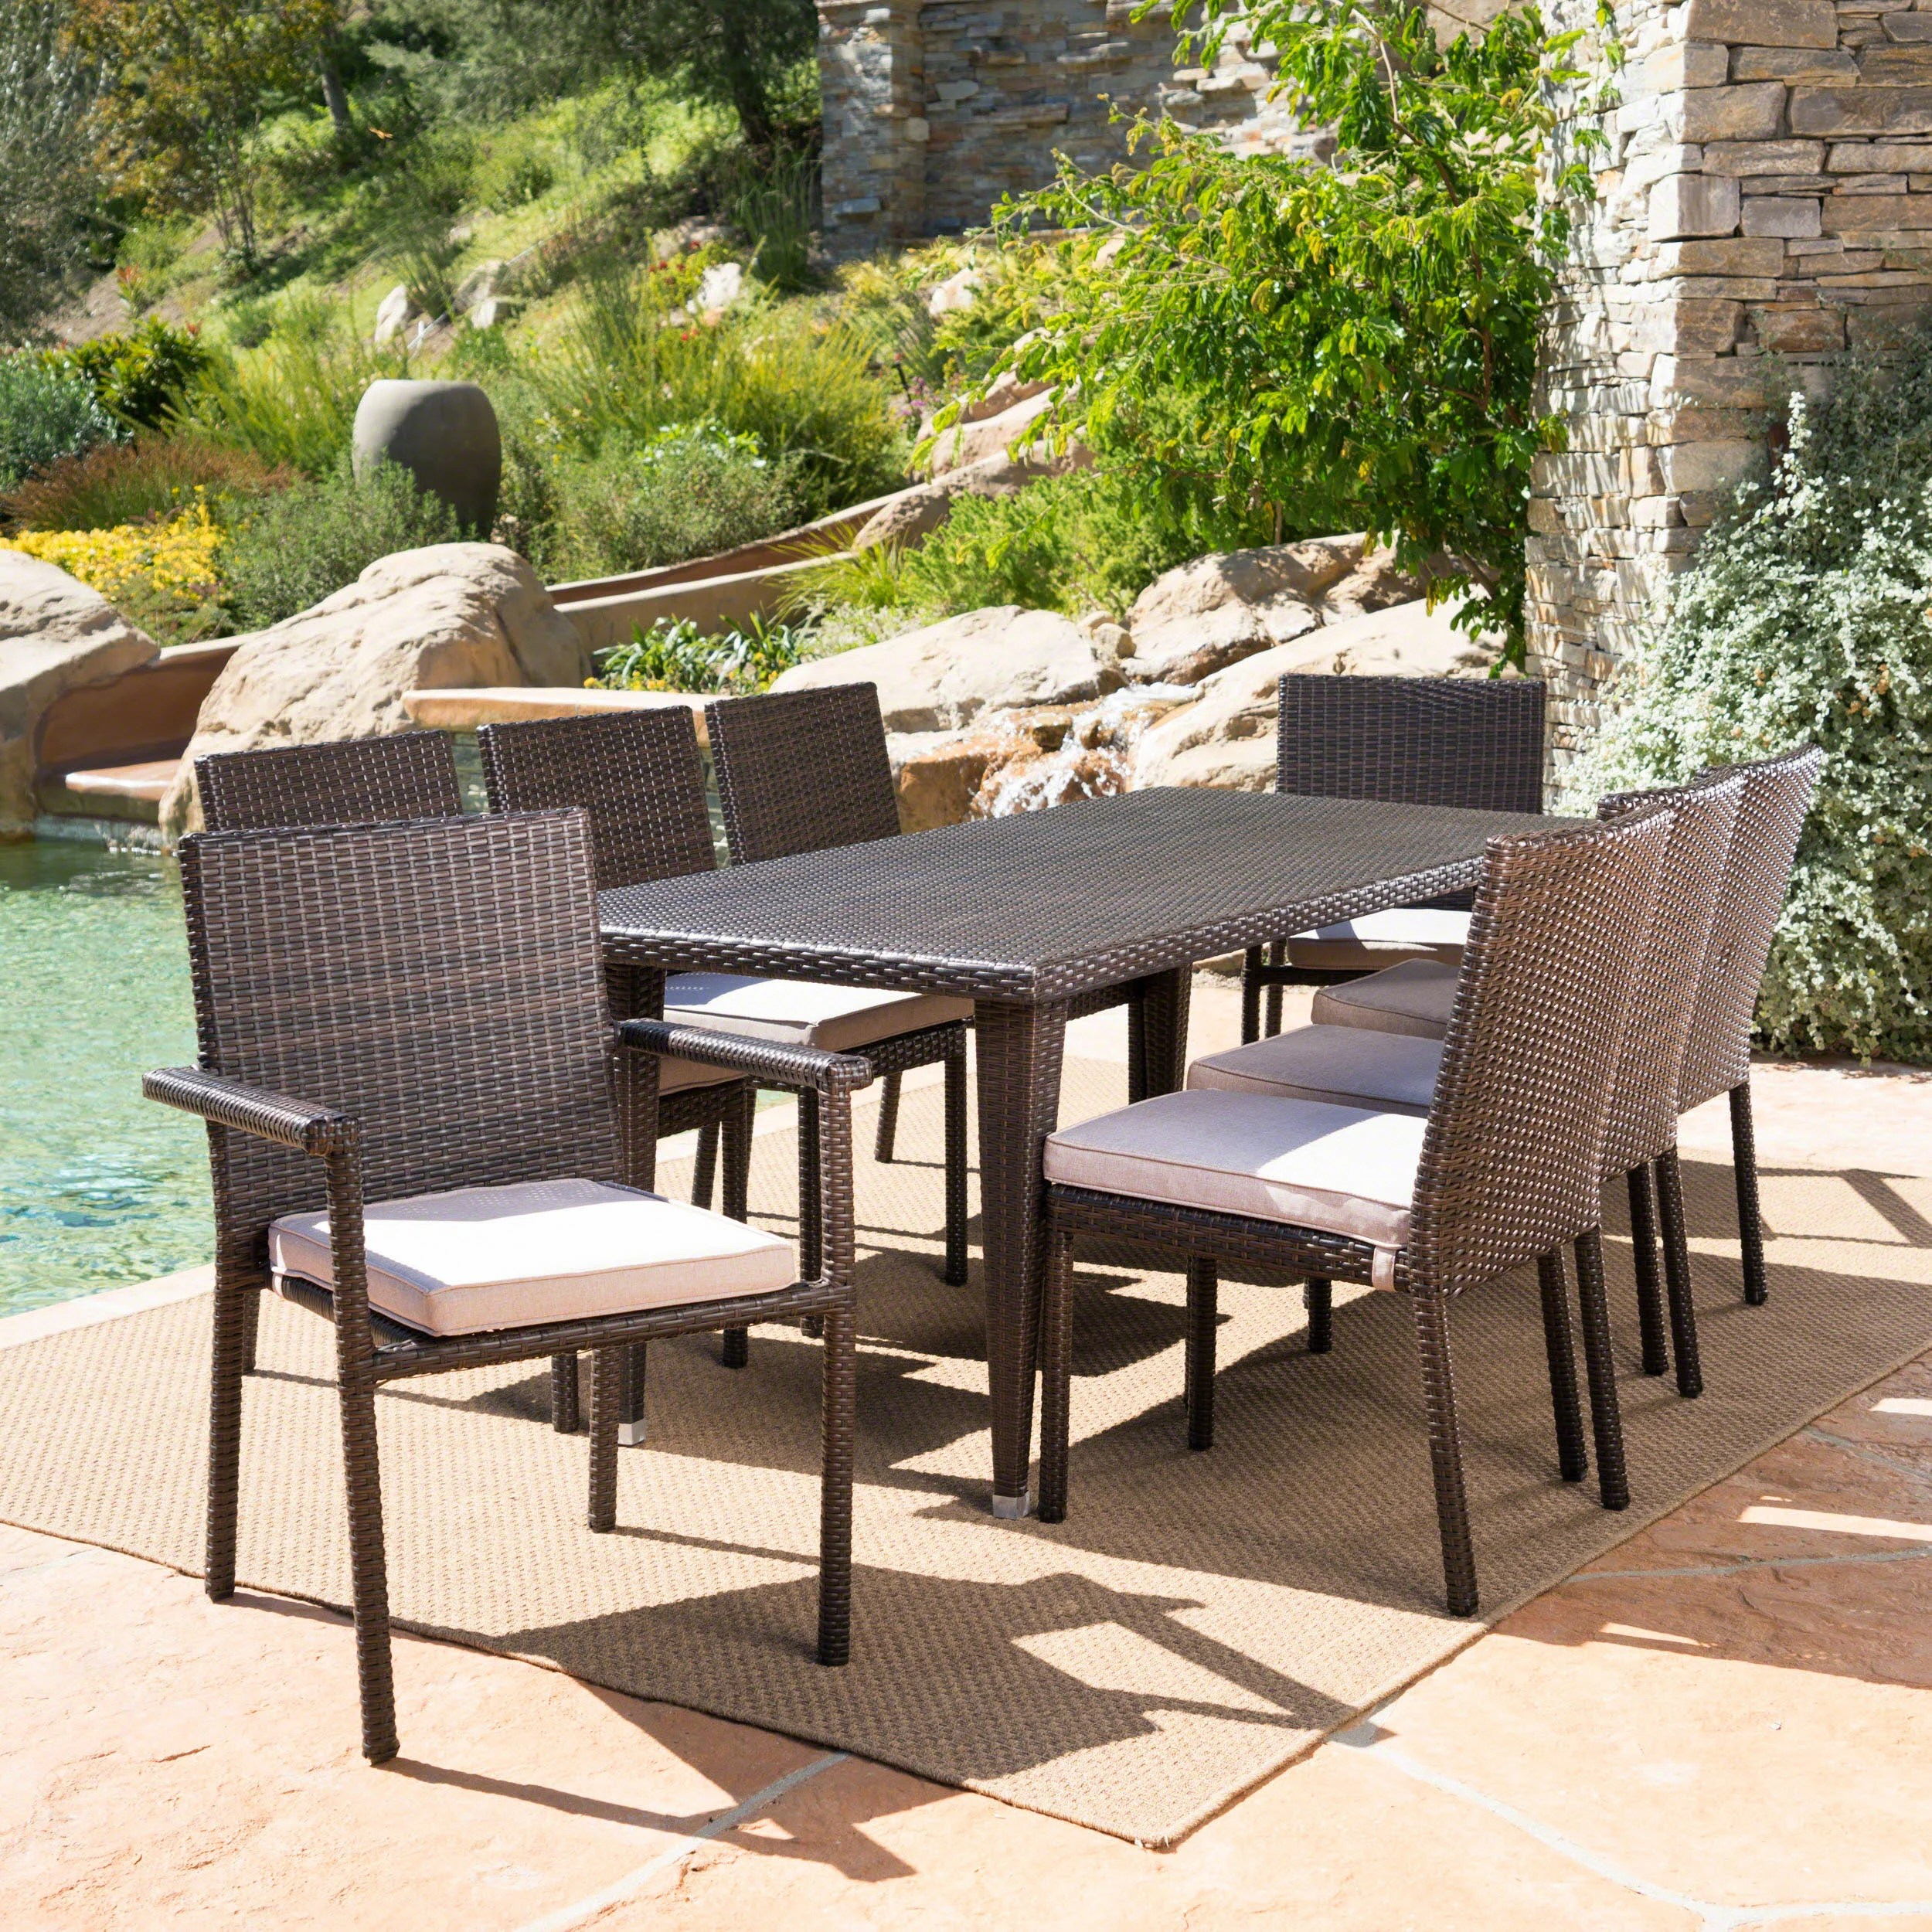 9 Piece Outdoor Dining Set Renea Outdoor 9 Piece Dining Set With Cushions